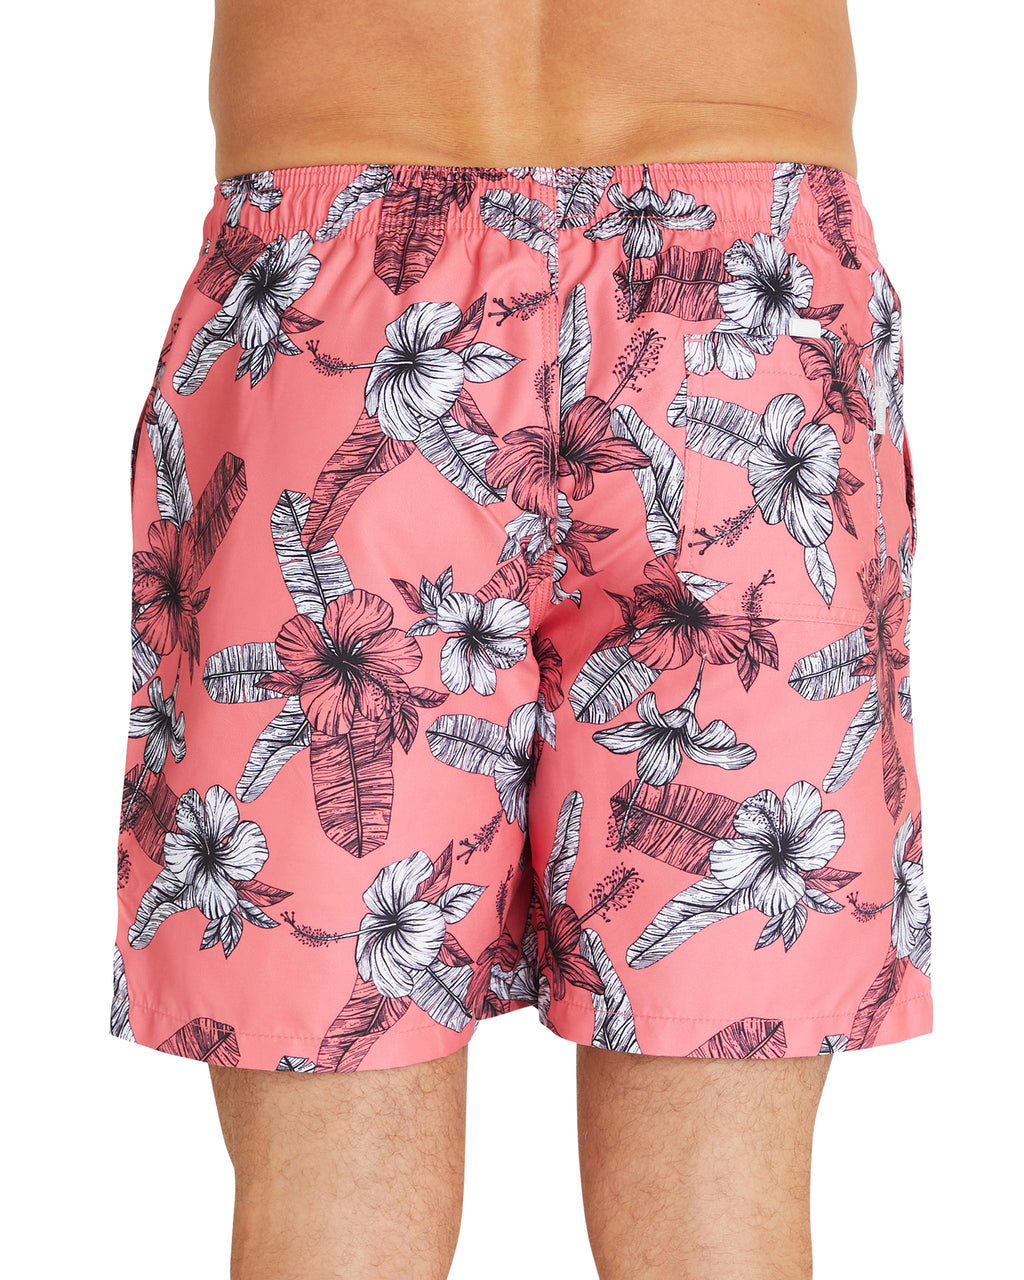 Swim Short - Fern Gully - Coral